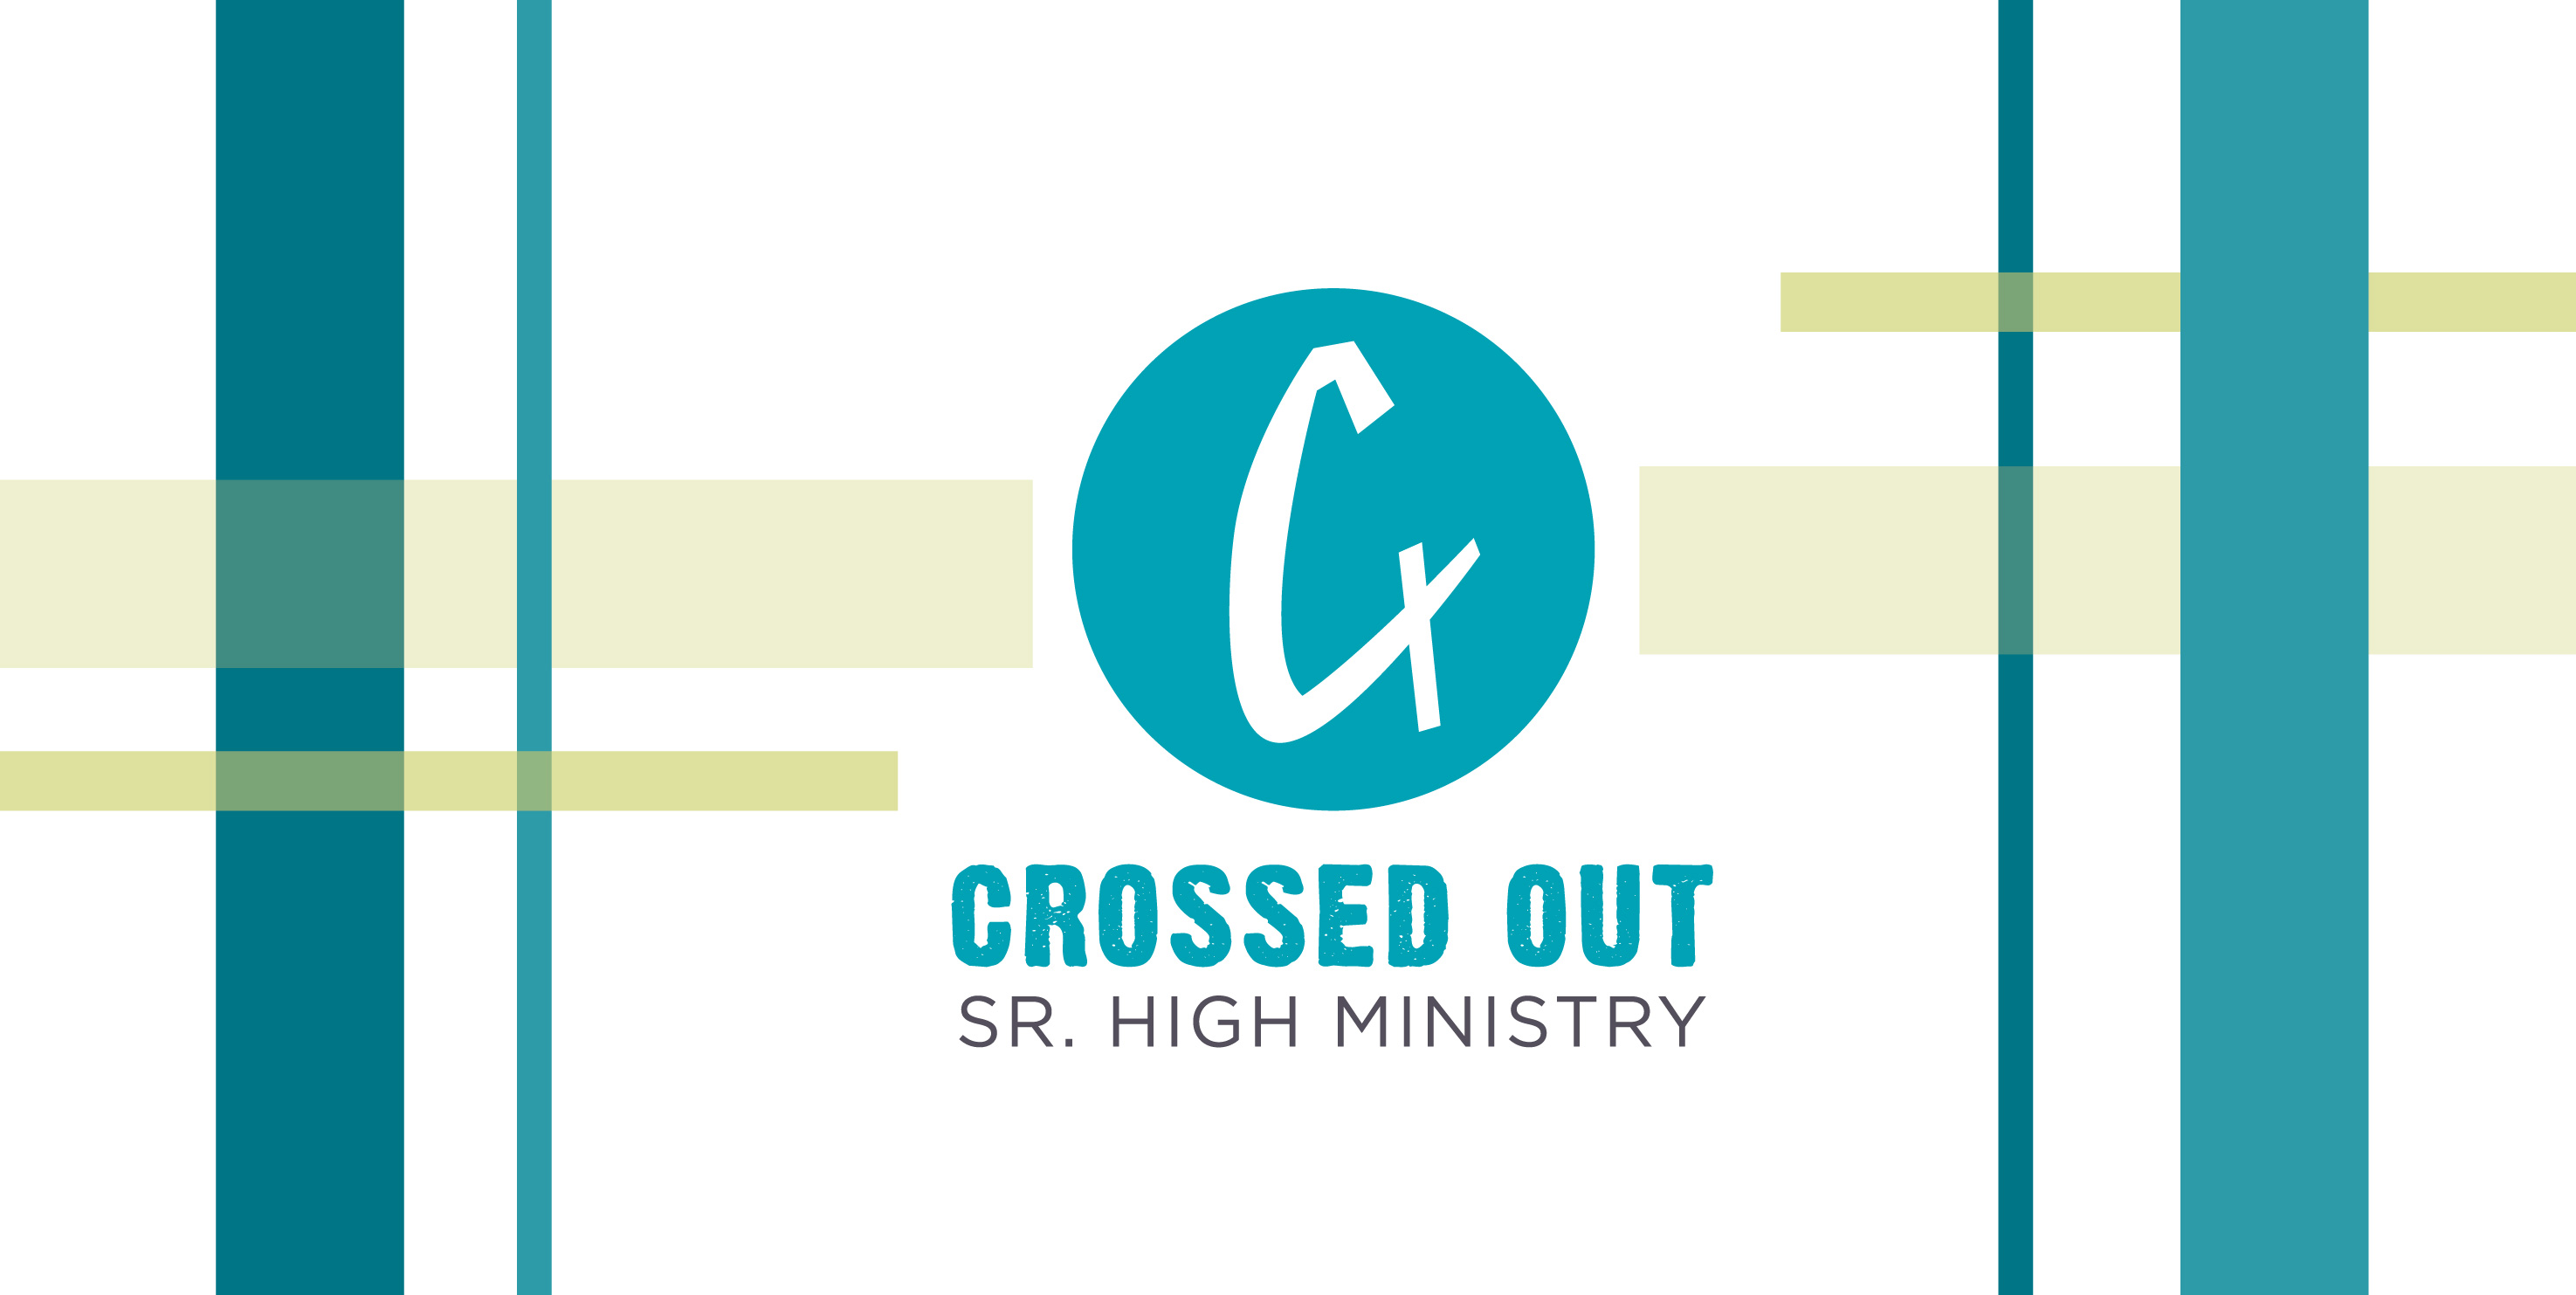 Crossed Out Sr. High Ministry